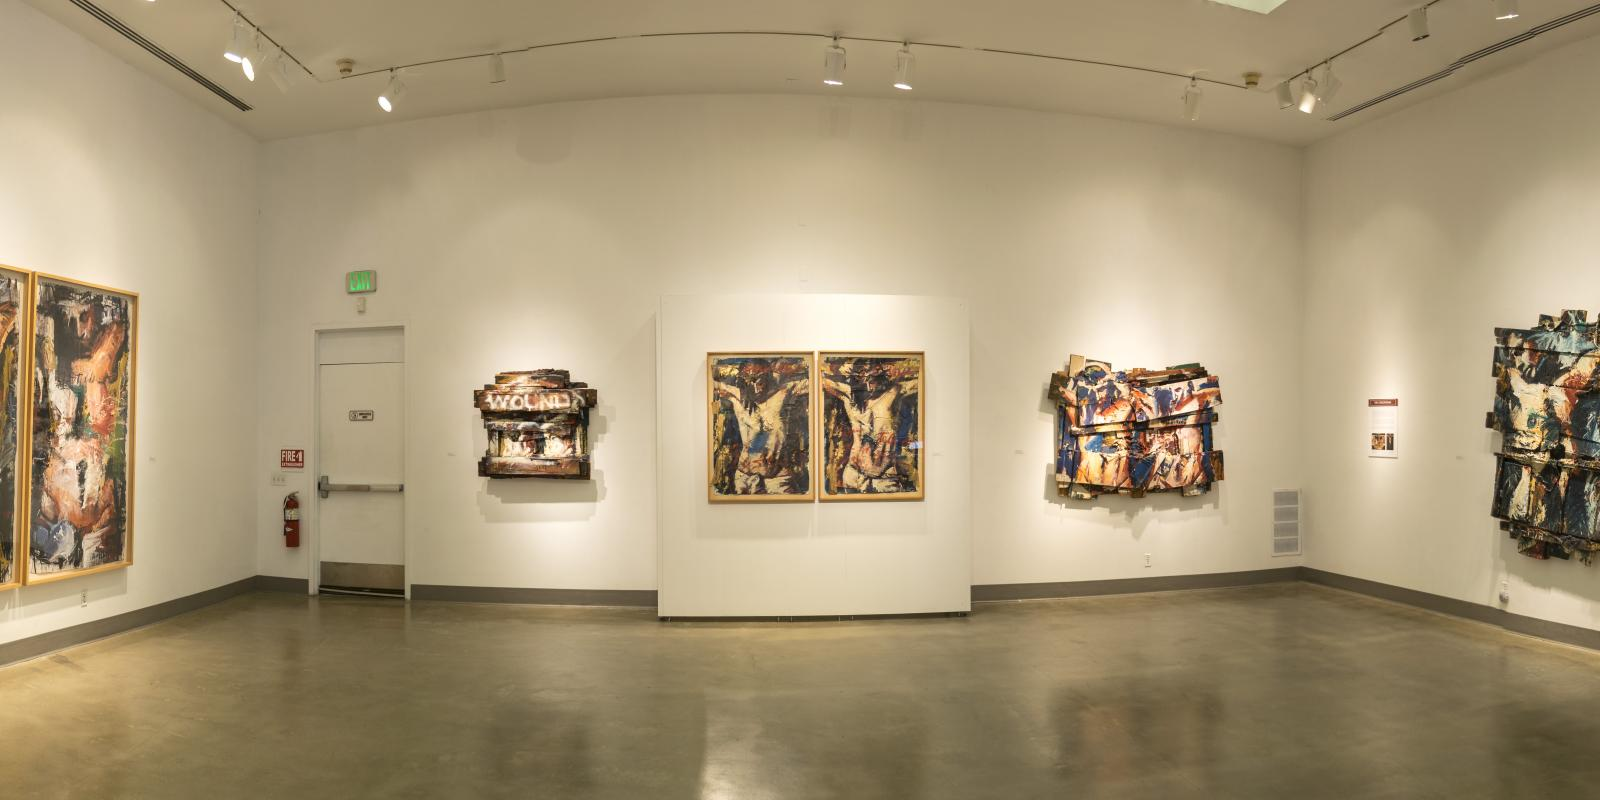 Westside of front gallery, Exhibition: Jim Morphesis: Passion and Presence, Memento and Myth, Nov 18, 2017 - Feb 1, 2018, Curator: Michele Cairella Fillmore, W. Keith & Janet Kellogg Art Gallery, Cal Poly Pomona. [Panoramic of the North gallery]